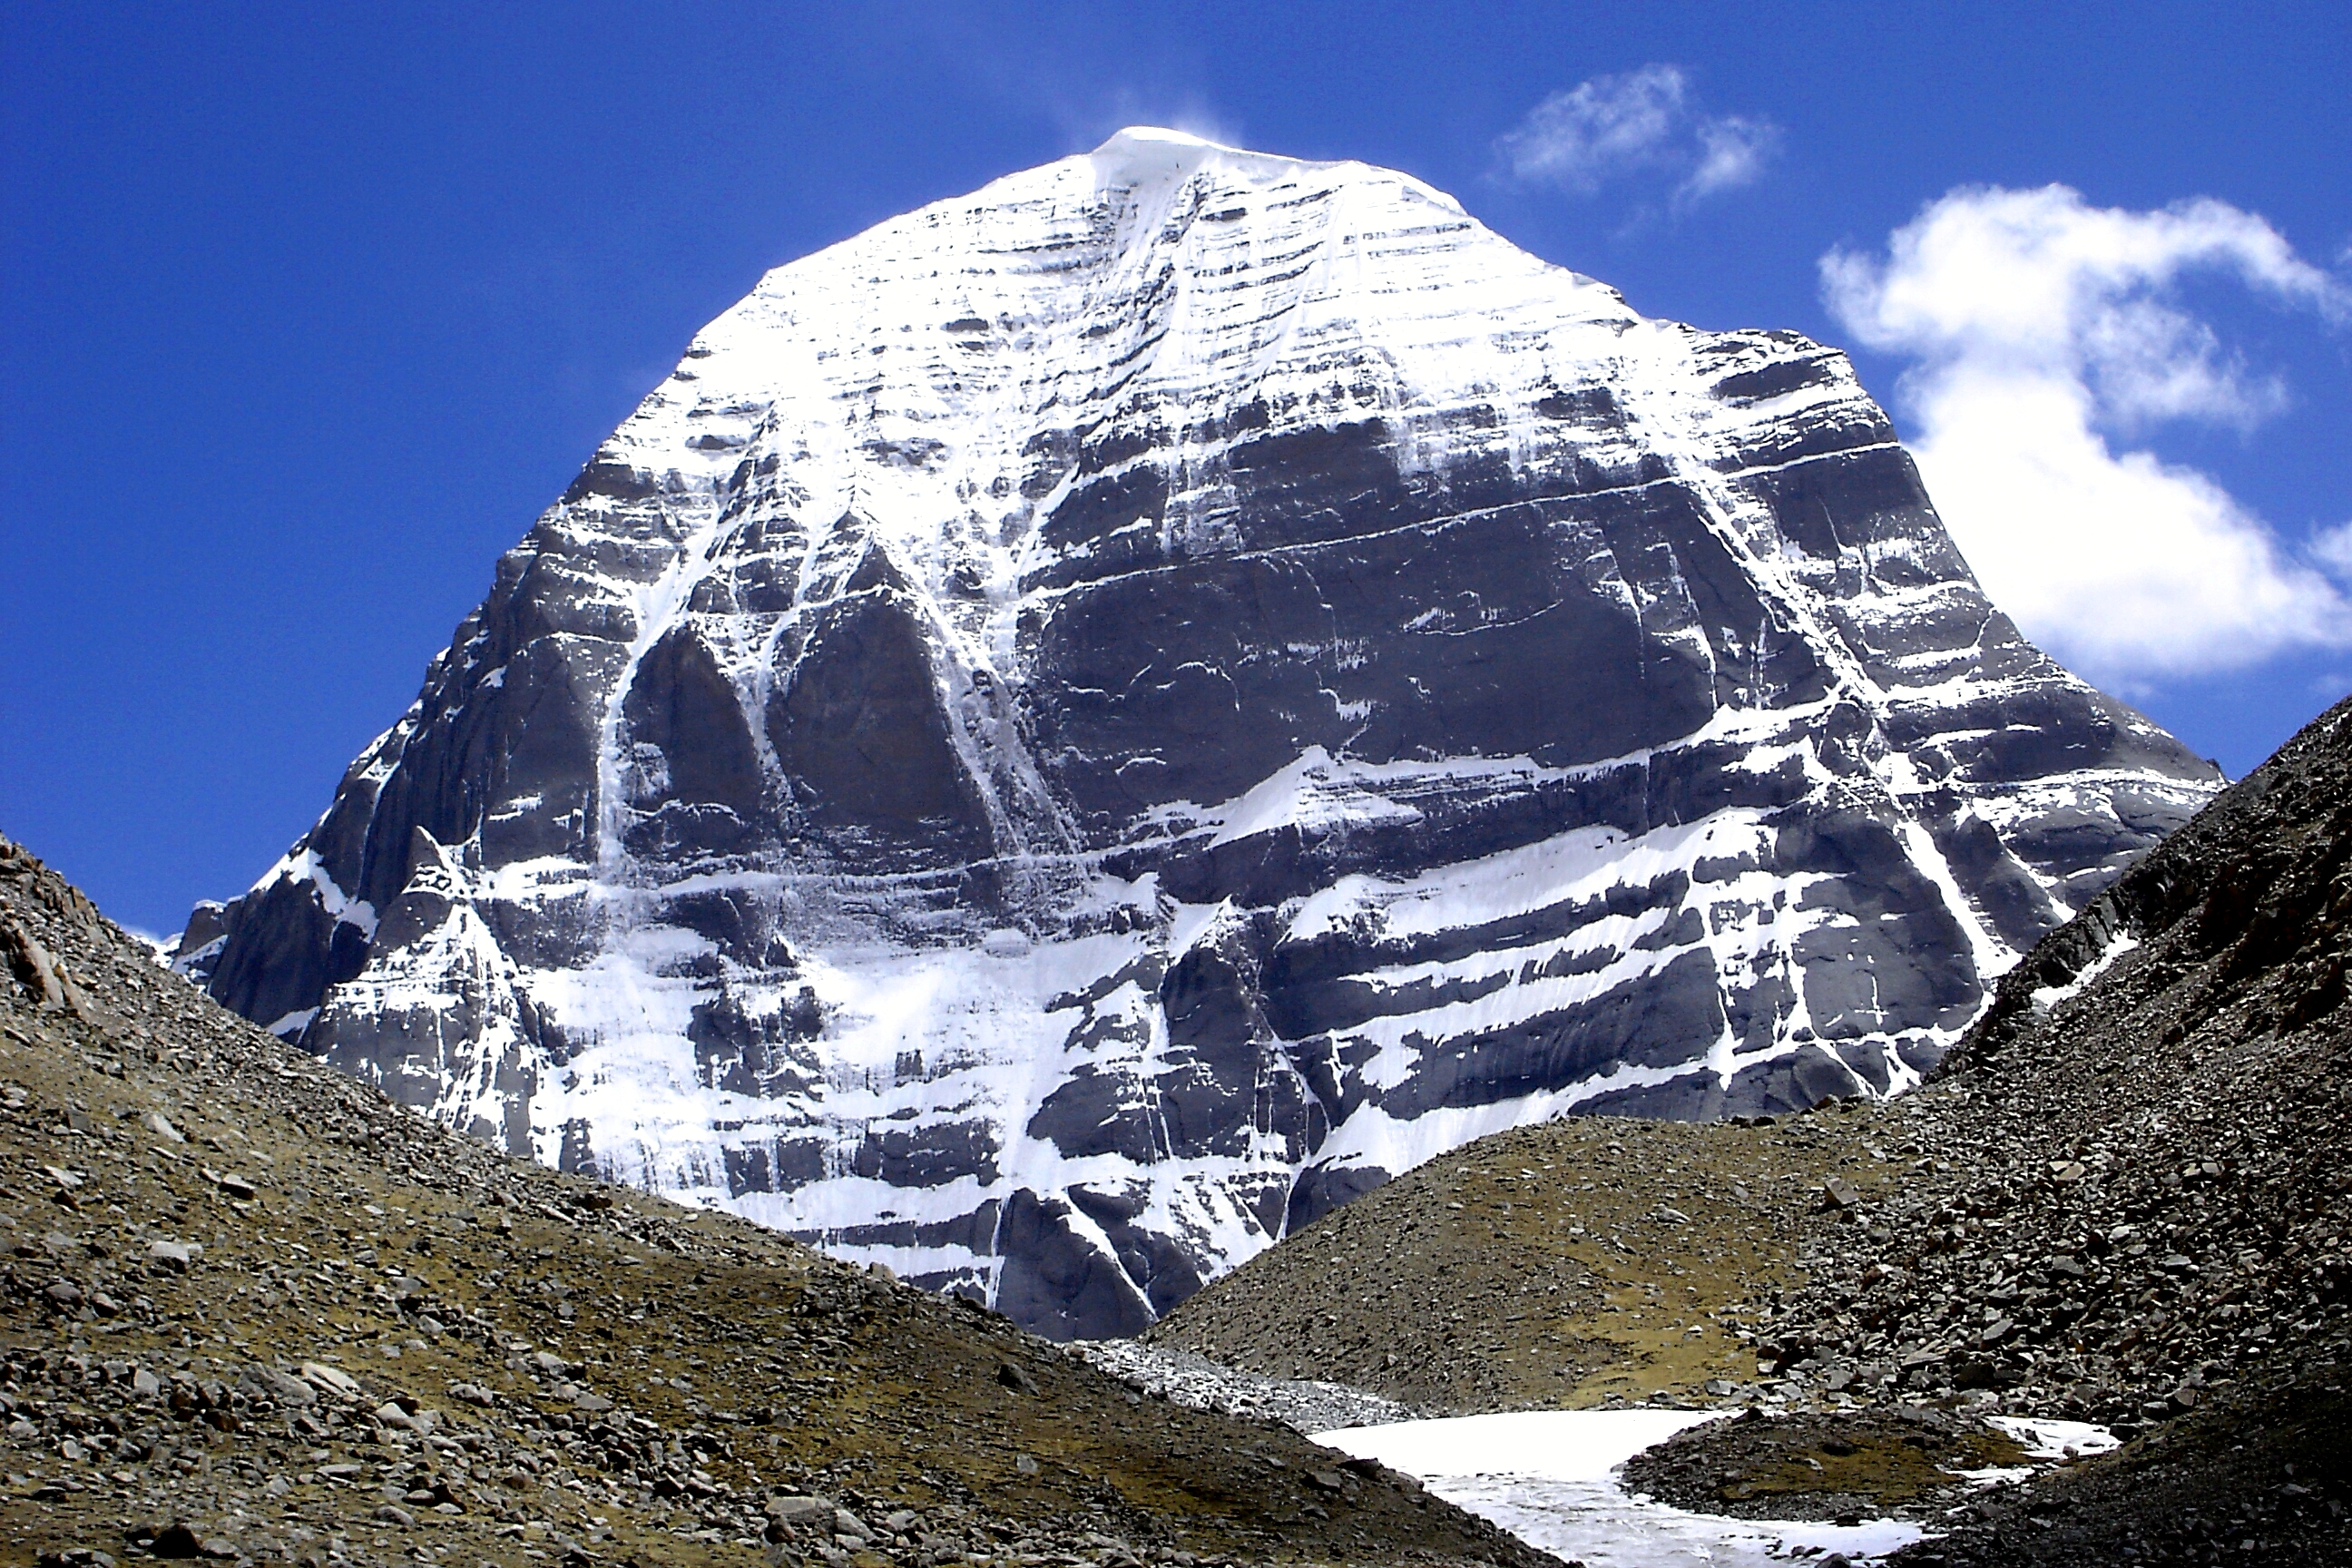 Northern side of Mount Kailash